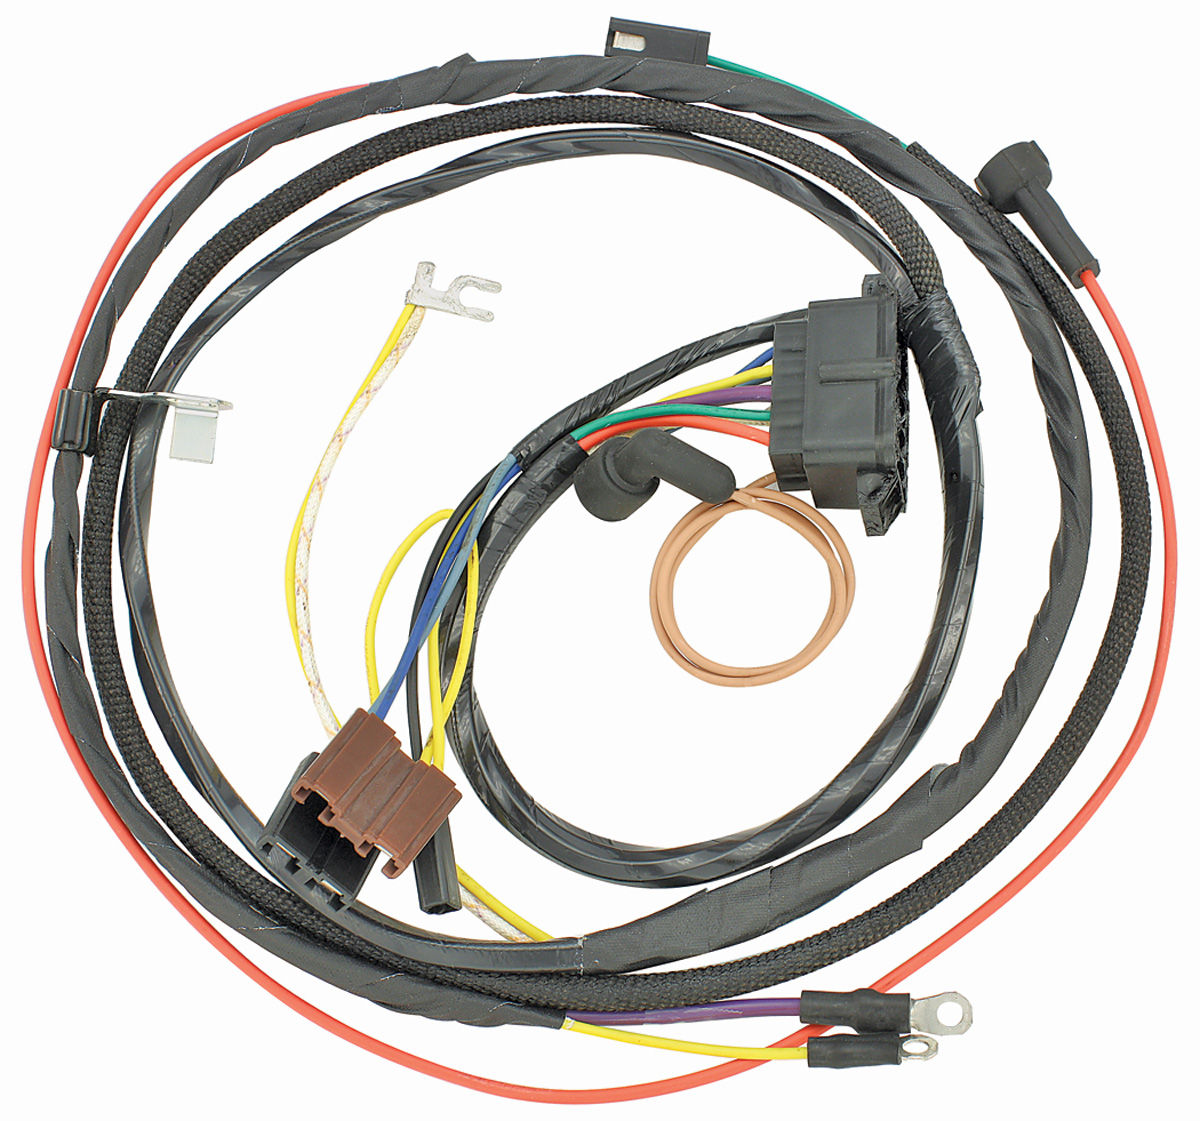 1972 chevelle alternator wiring diagram home cinema harness for 67 chevy nova get free image